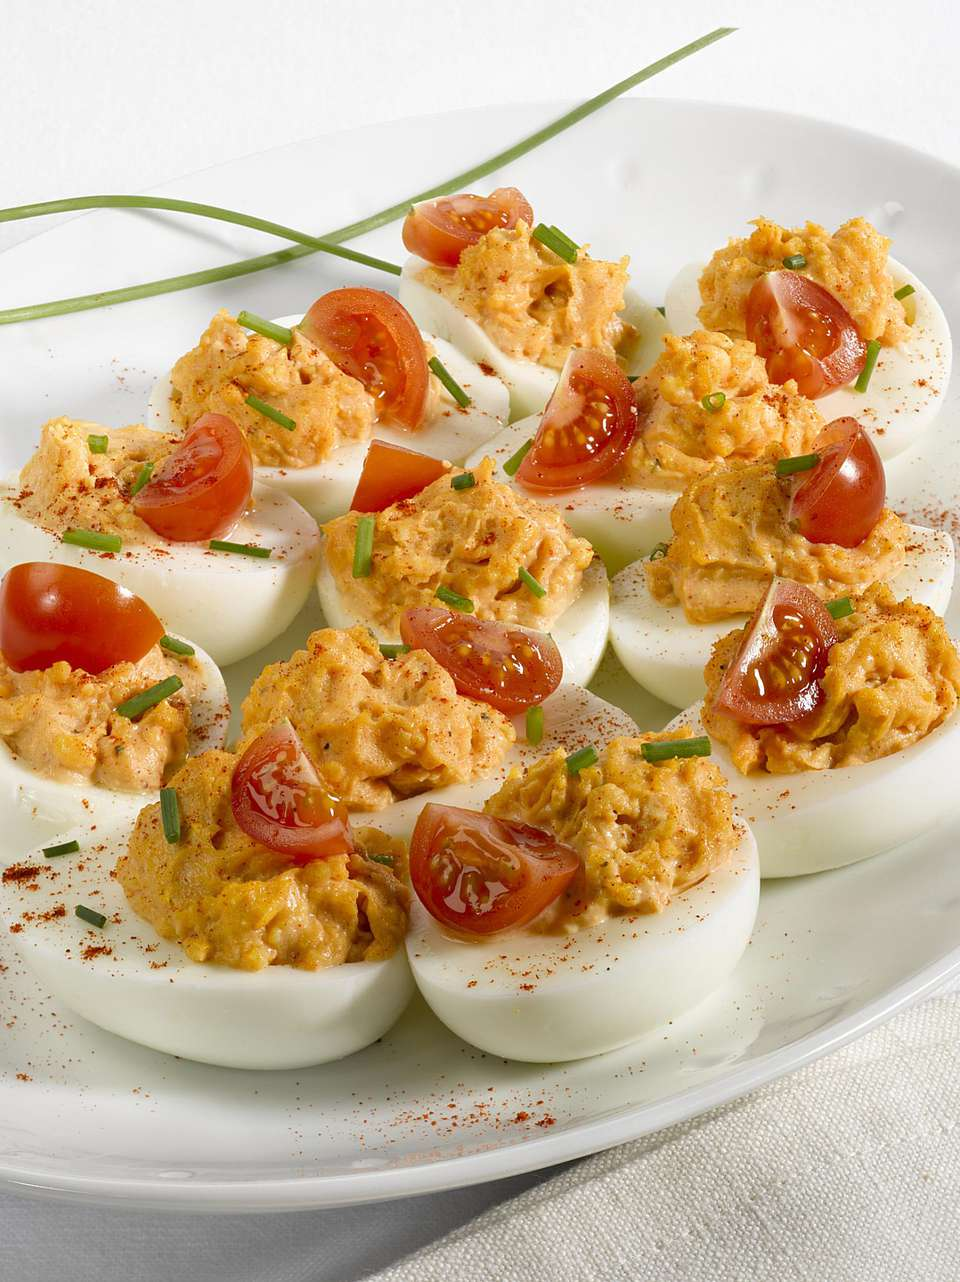 Delicious deviled eggs with tuna and tomato recipe.